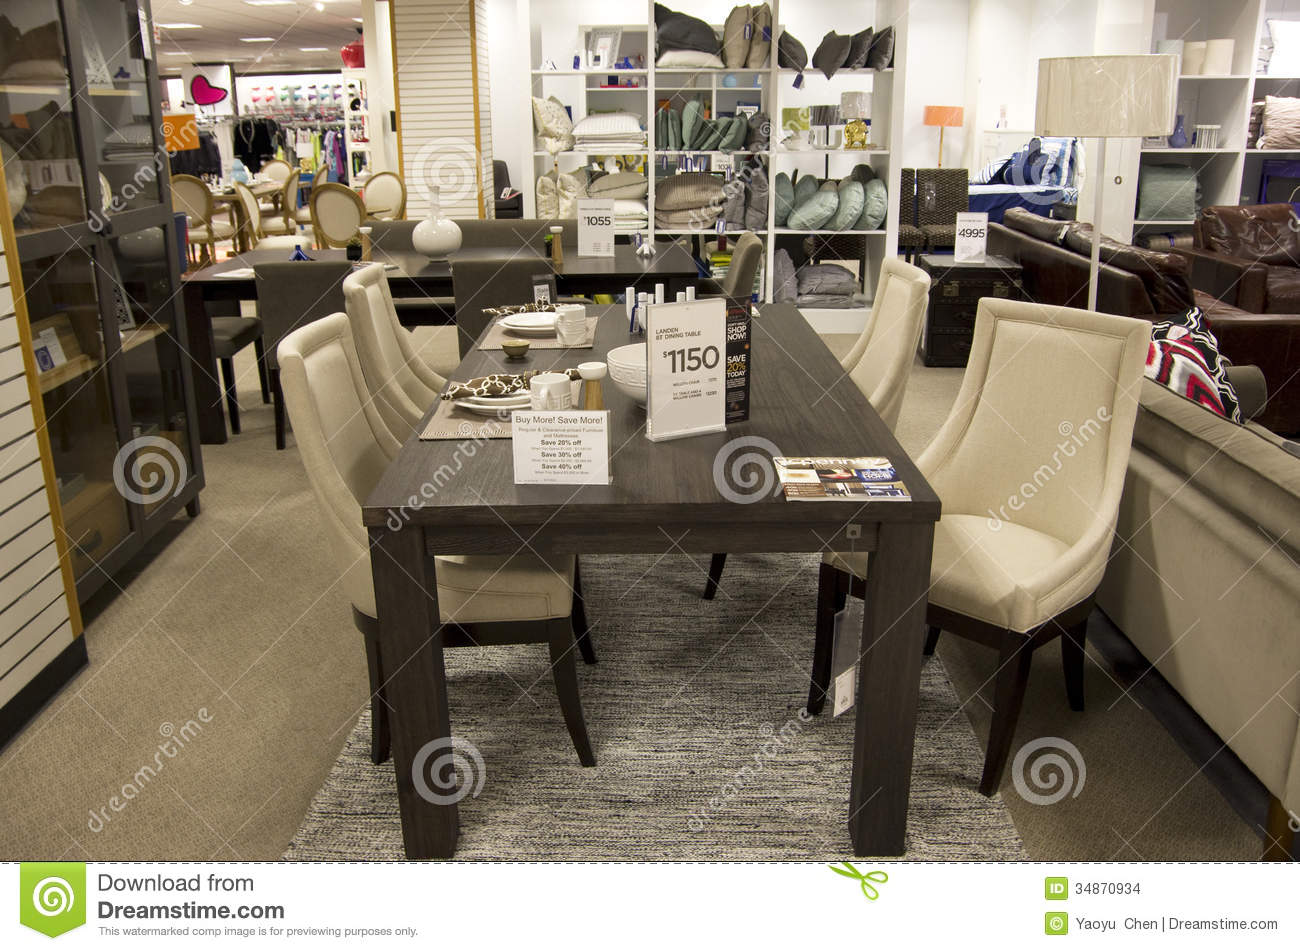 Editorial Stock Photo  Download Home Furniture Department Store. Home Furniture Department Store Editorial Stock Image   Image